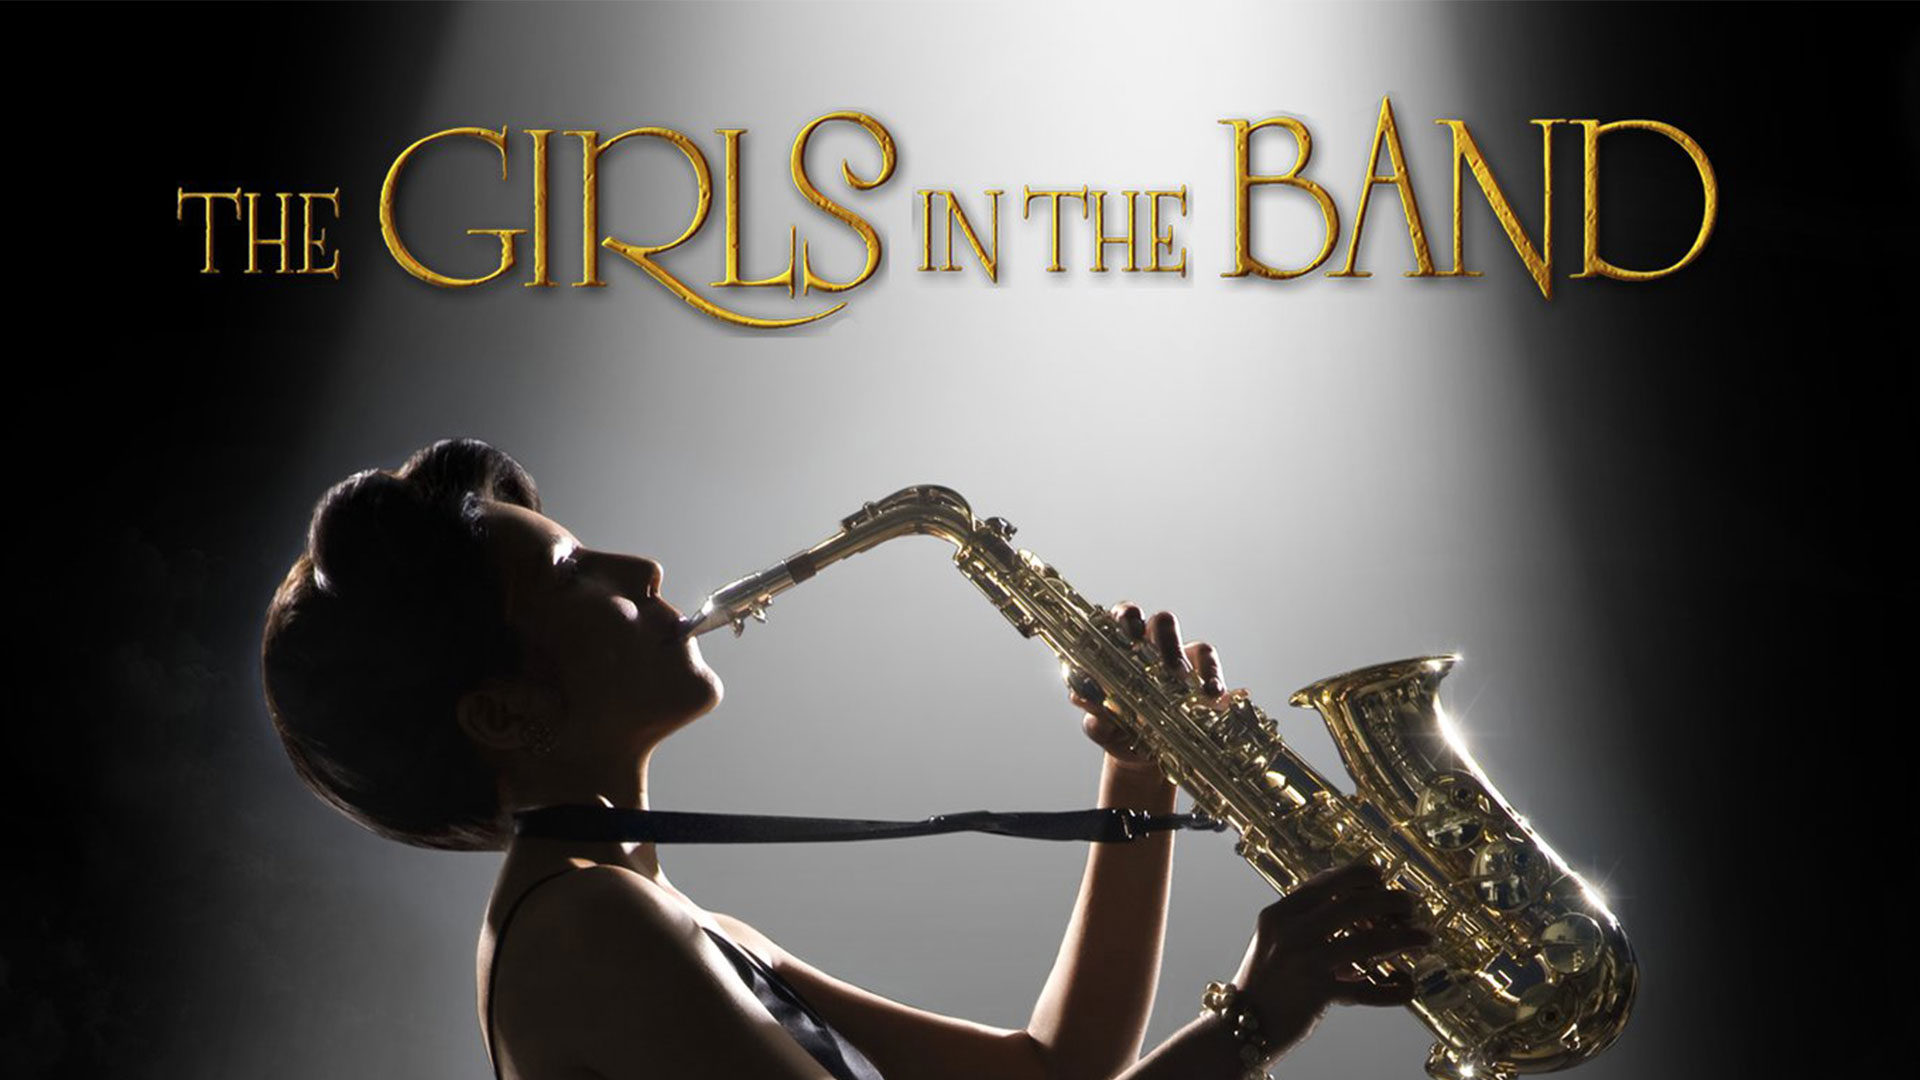 he Girls in the Band tells the poignant, untold stories of female jazz and big band instrumentalists and their fascinating, groundbreaking journeys from the late 30s to the present day.